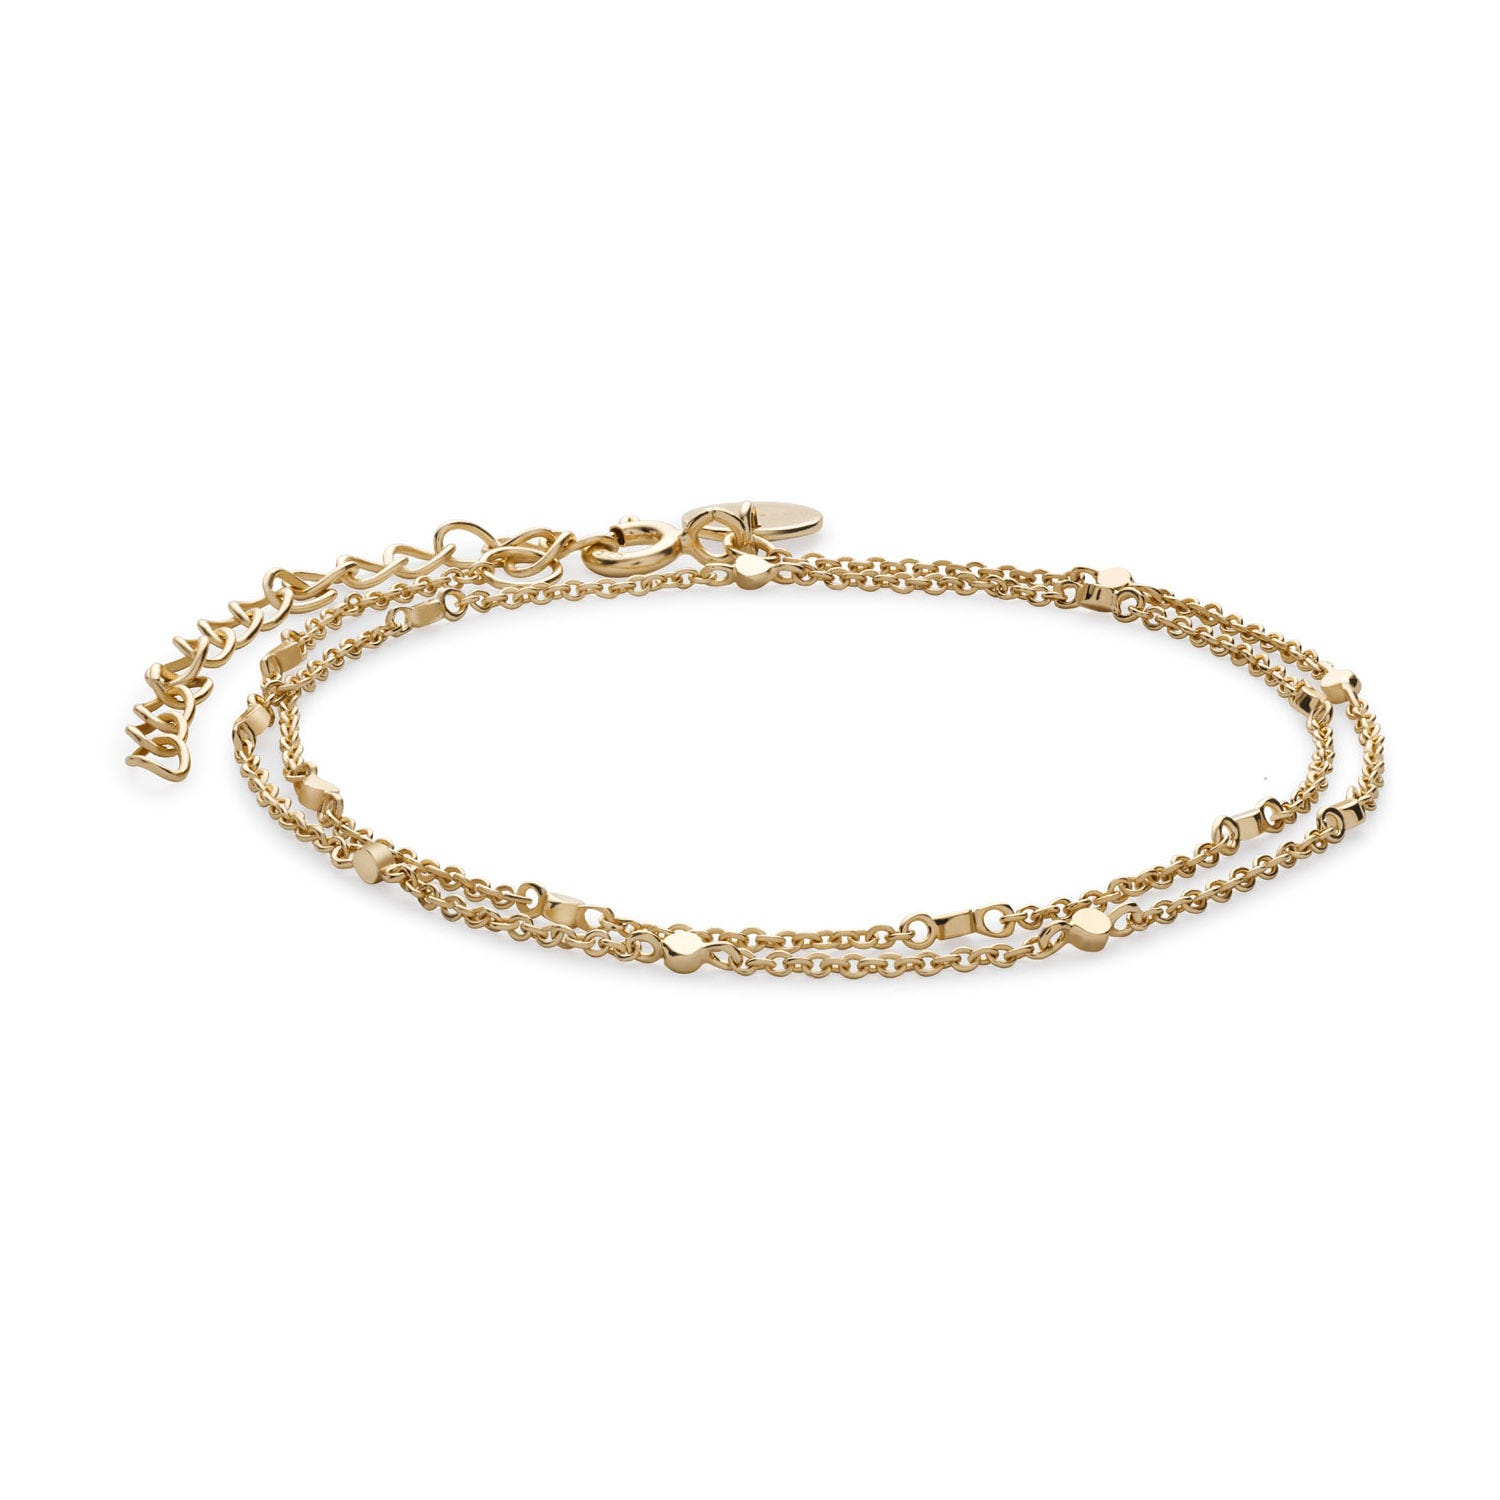 Rosefield Broome Yellow Gold Plated Double Wrap Chain Bracelet